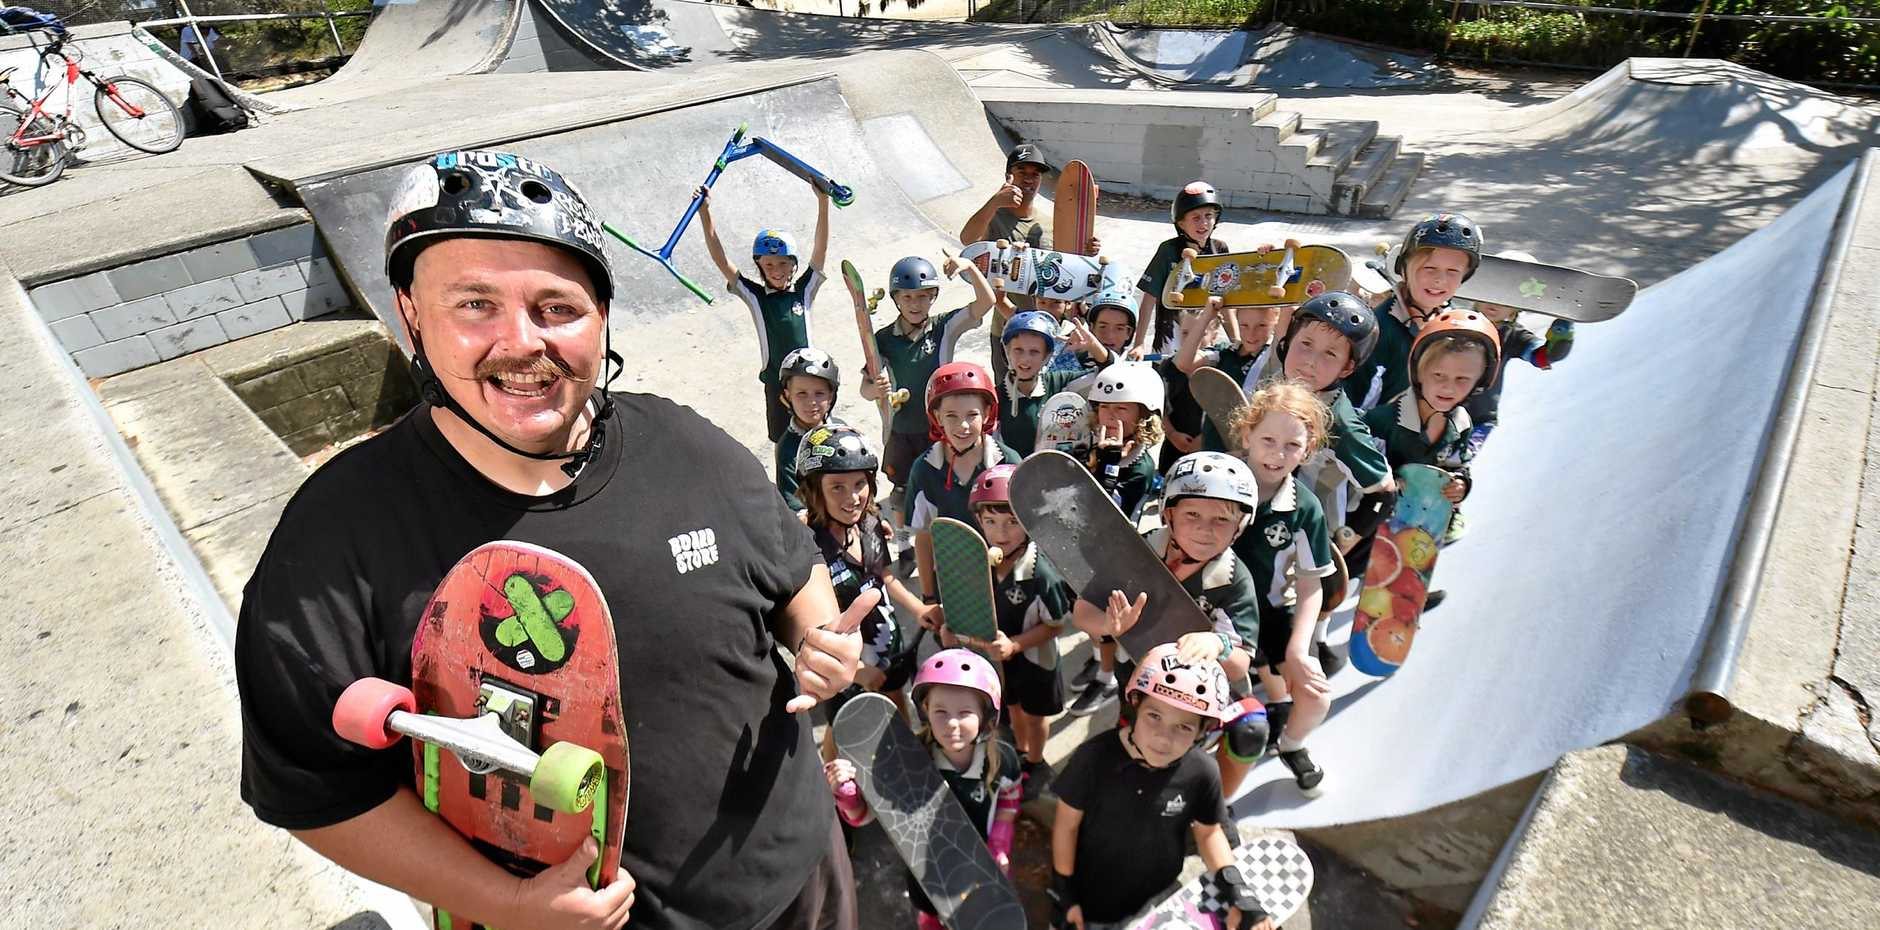 ICONIC: Dave Fisher has been coming to Dicky Beach Skate Park since the early '90s and he says the park needs upgrading, amidst fears council want to relocate it.